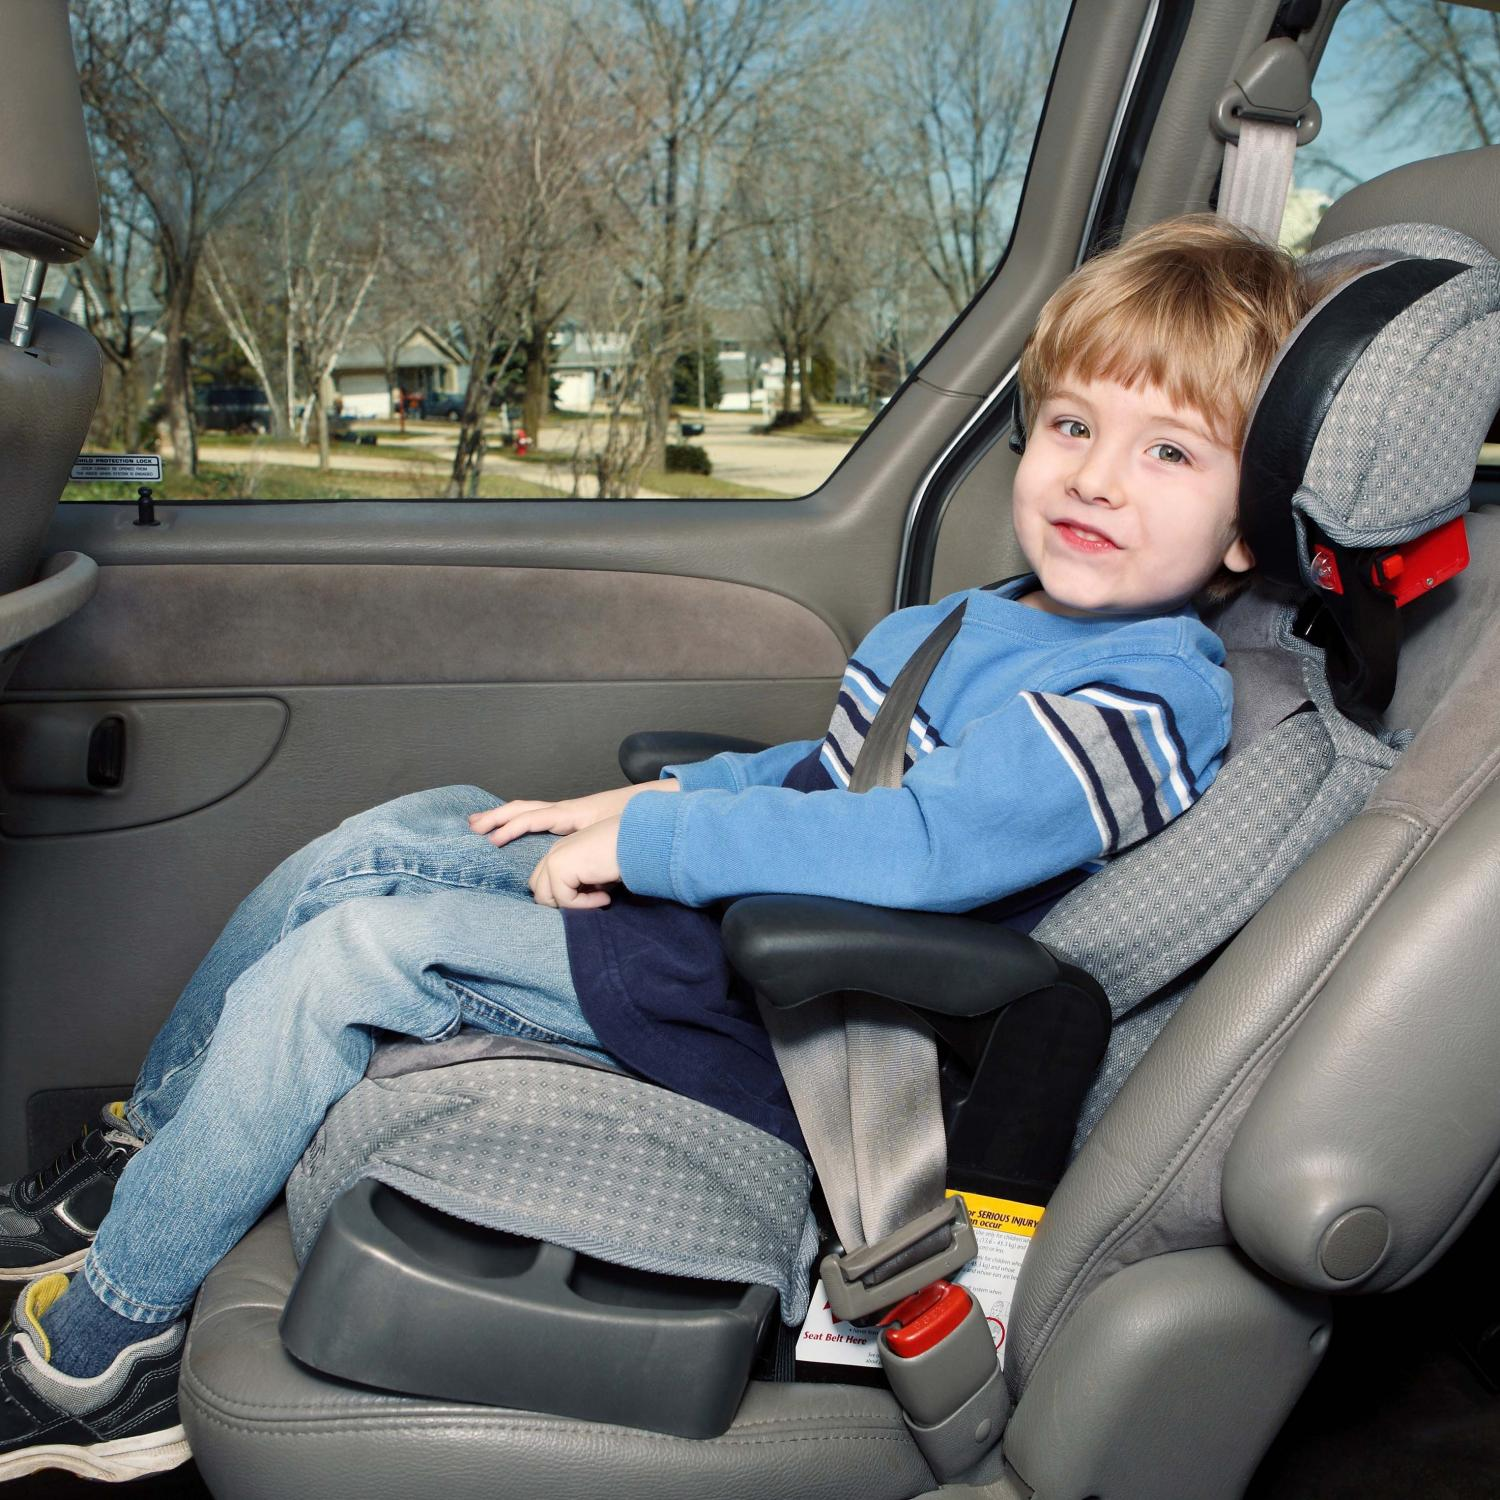 A Booster Seat: How to Know if Your Child